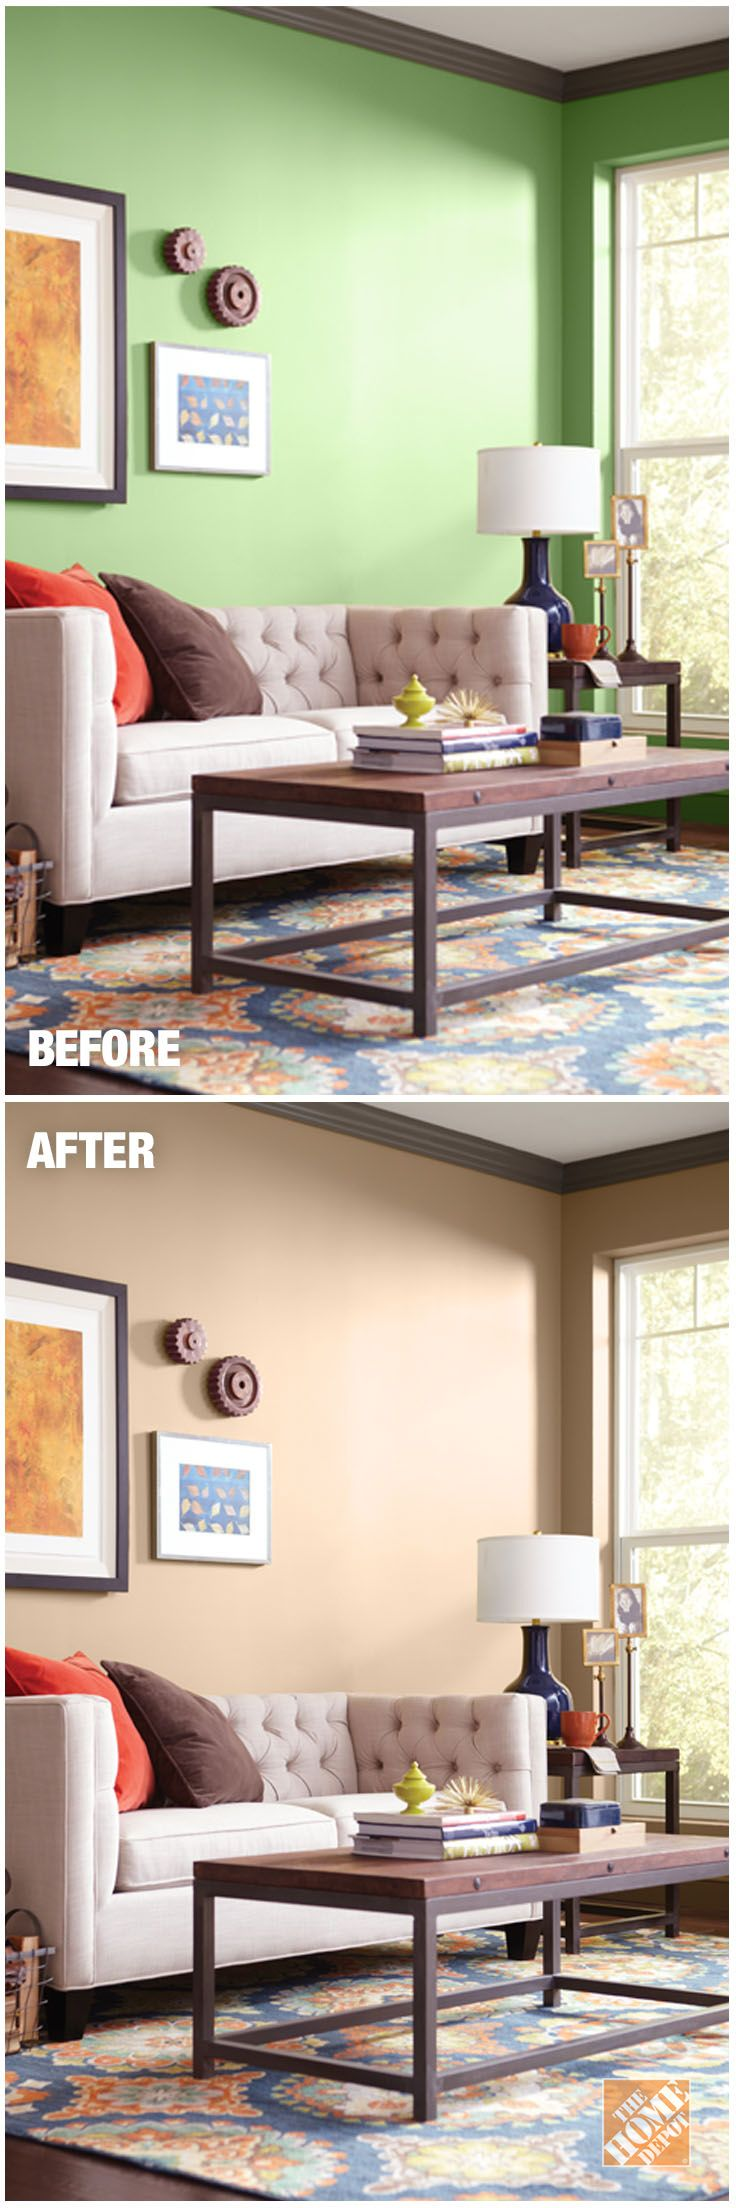 behr paint can give a room a whole new look explore on on home depot behr paint colors id=60912